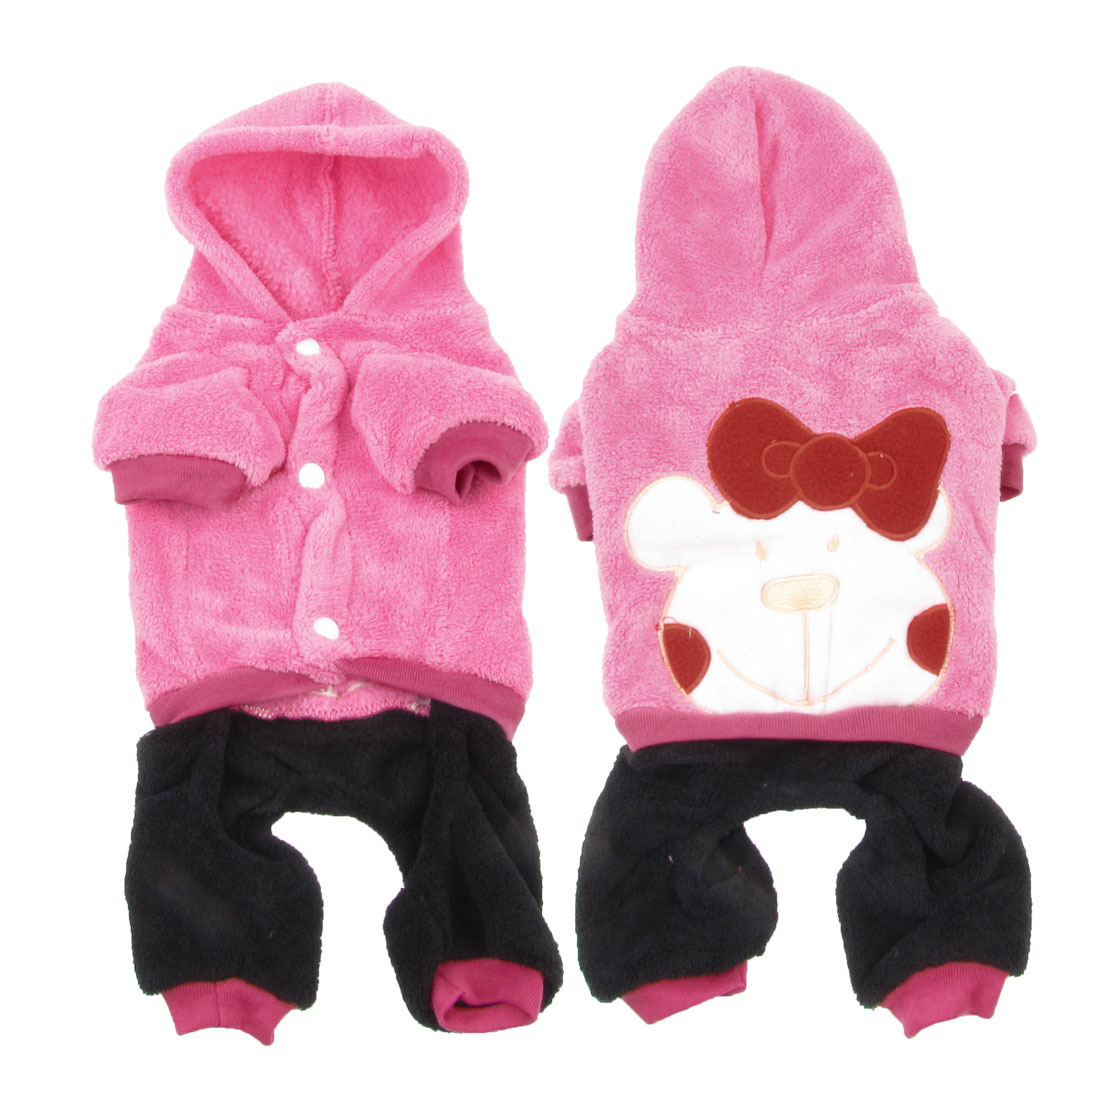 Short Sleeves Hooded Bowknot Decor Chihuahua Pet Dog Apparel Jumpsuit Pink XL